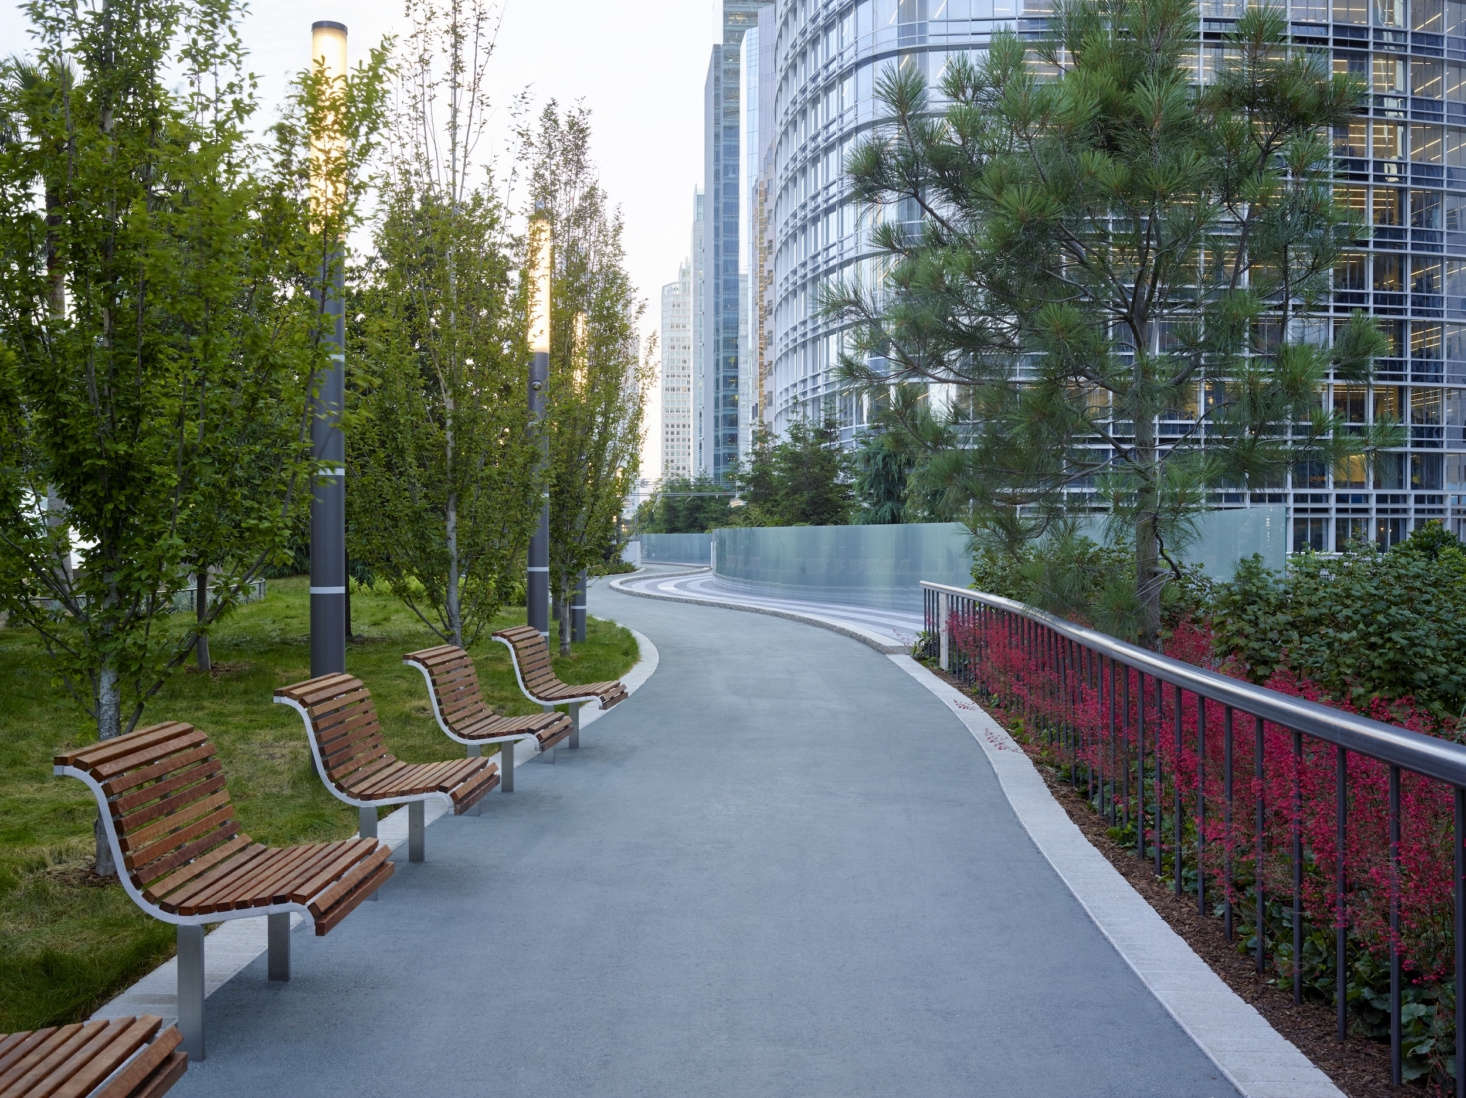 The main path, with resting benches throughout, runs around the park. Photograph by Marion Brenner.